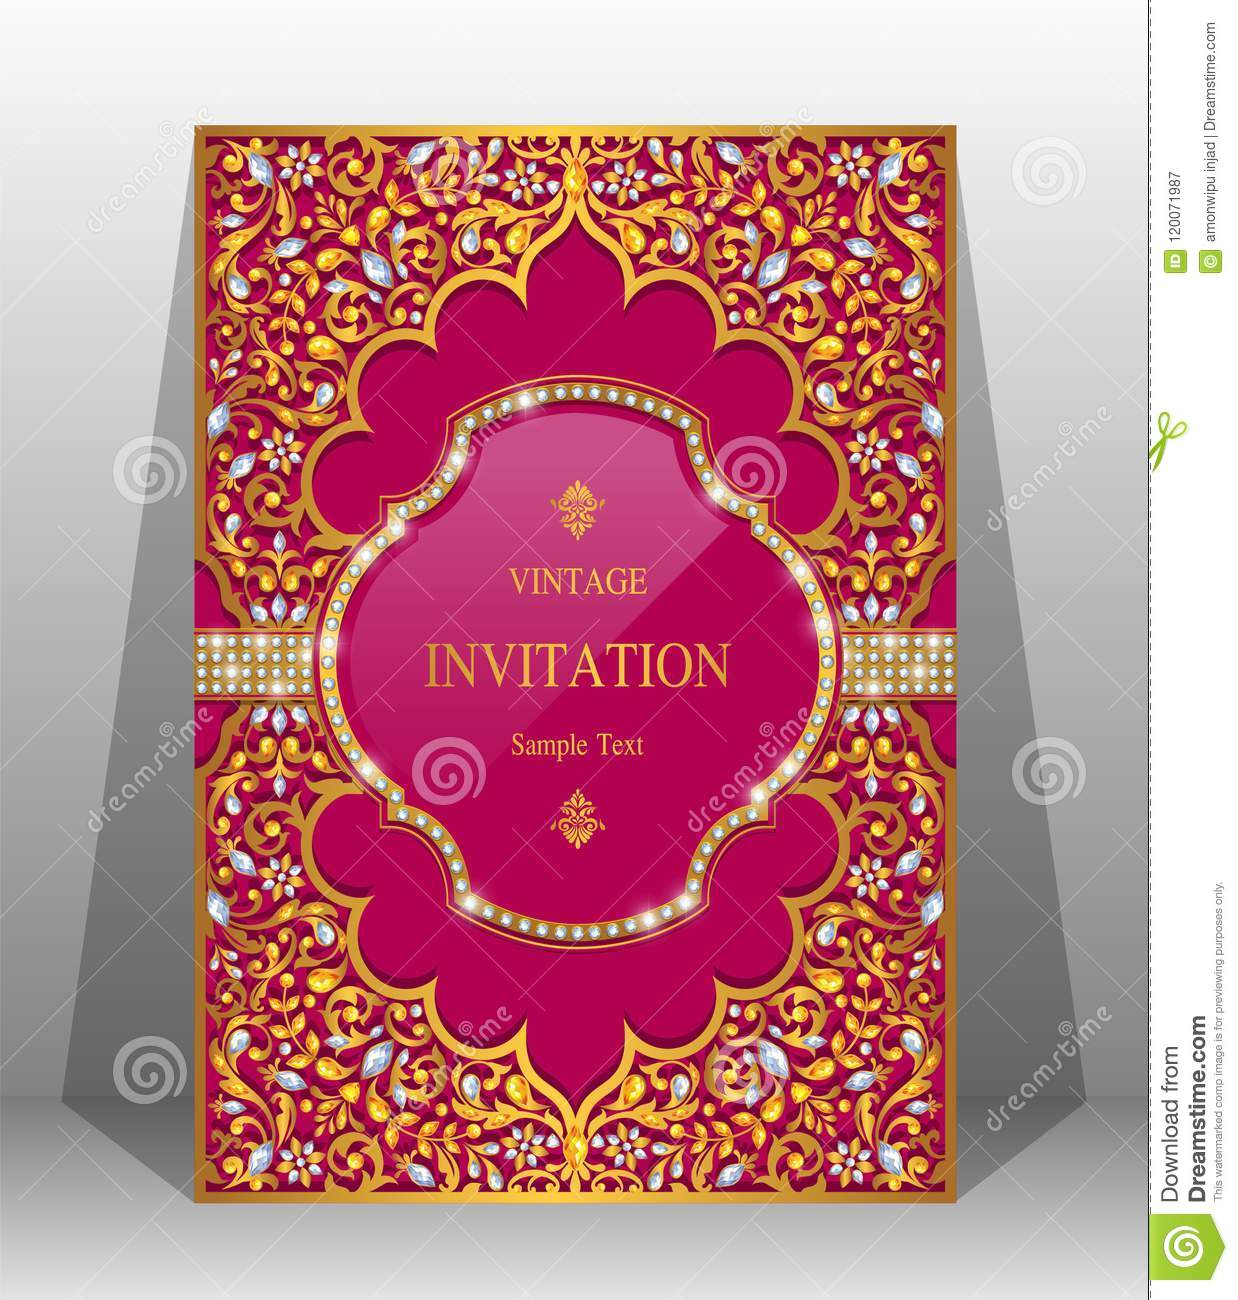 Wedding Invitation Card Templates . Stock Vector - Illustration of ...